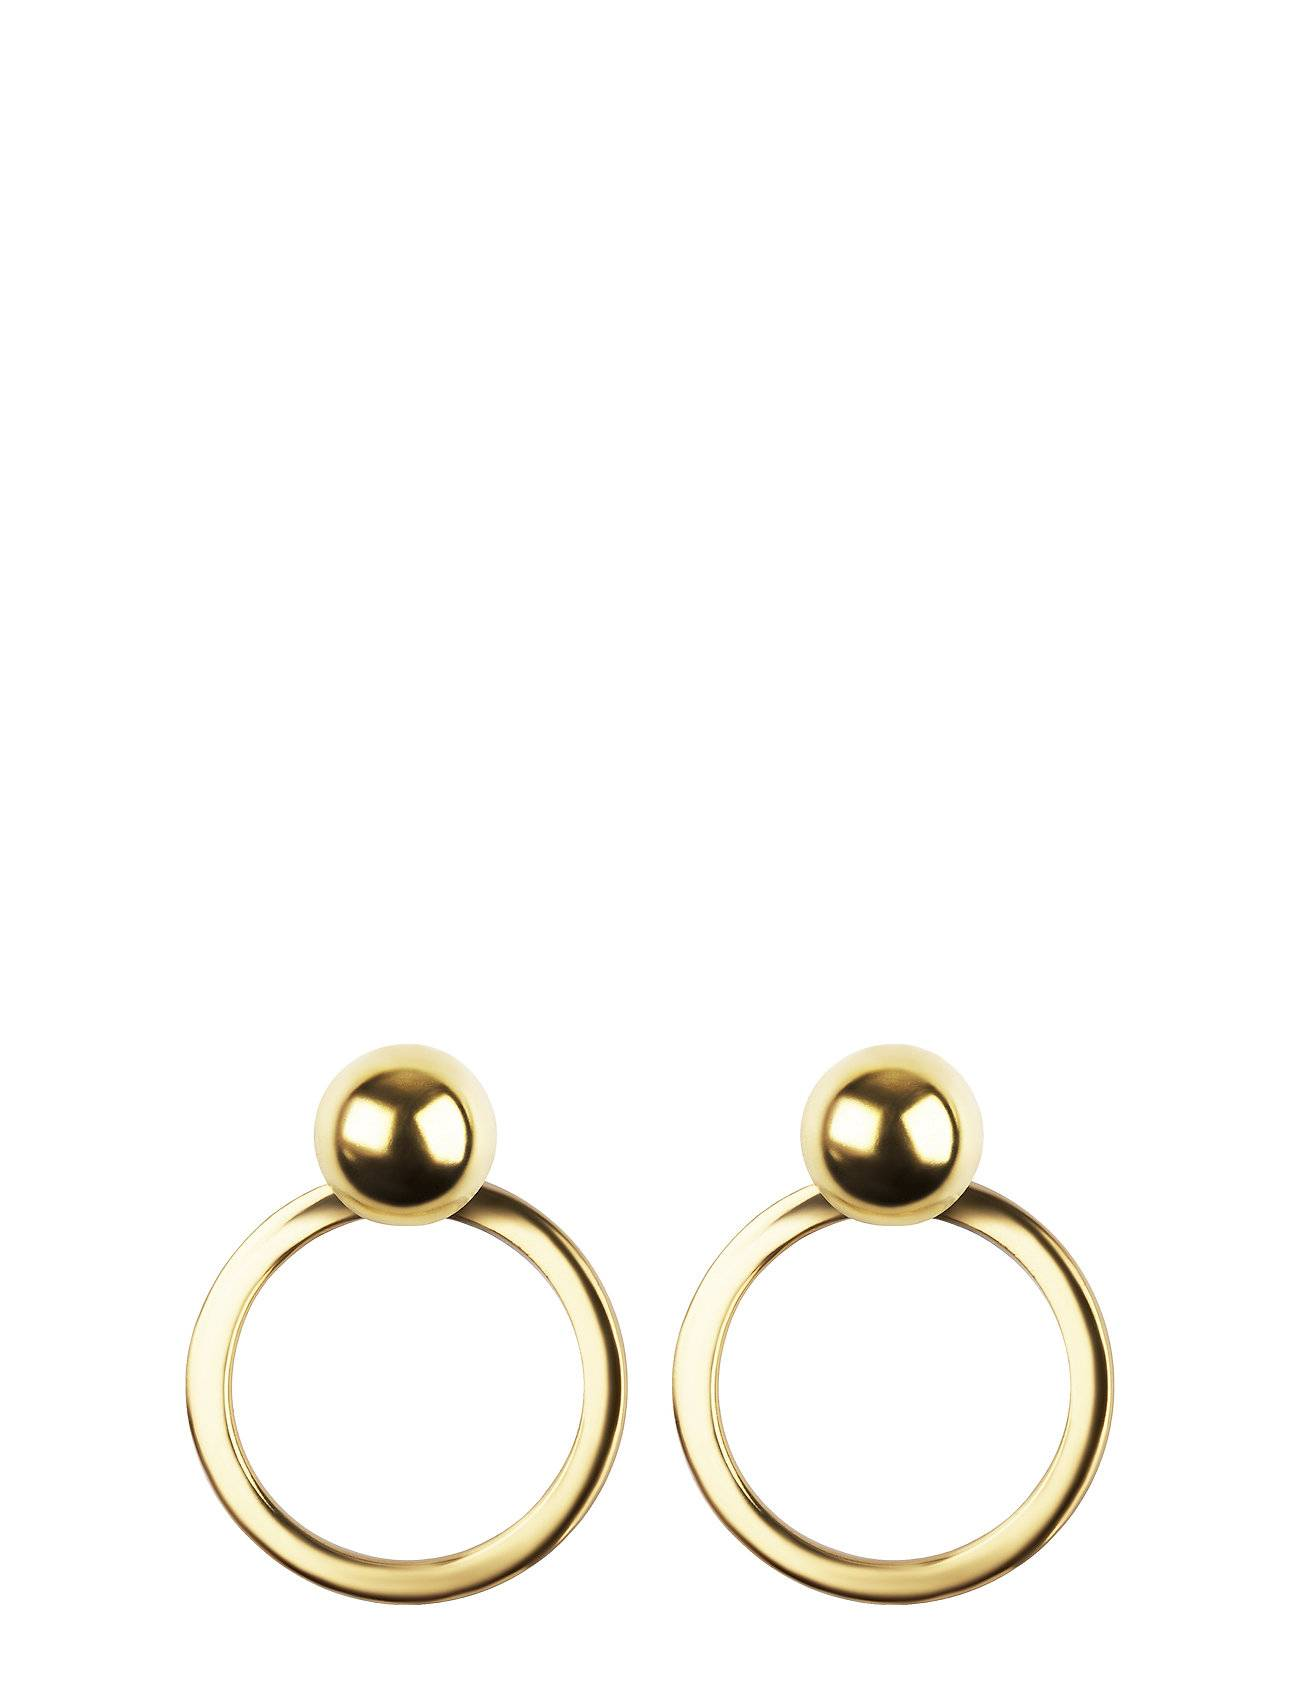 Syster P Planet Earrings Gold Gold Accessories Jewellery Earrings Studs Kulta Syster P